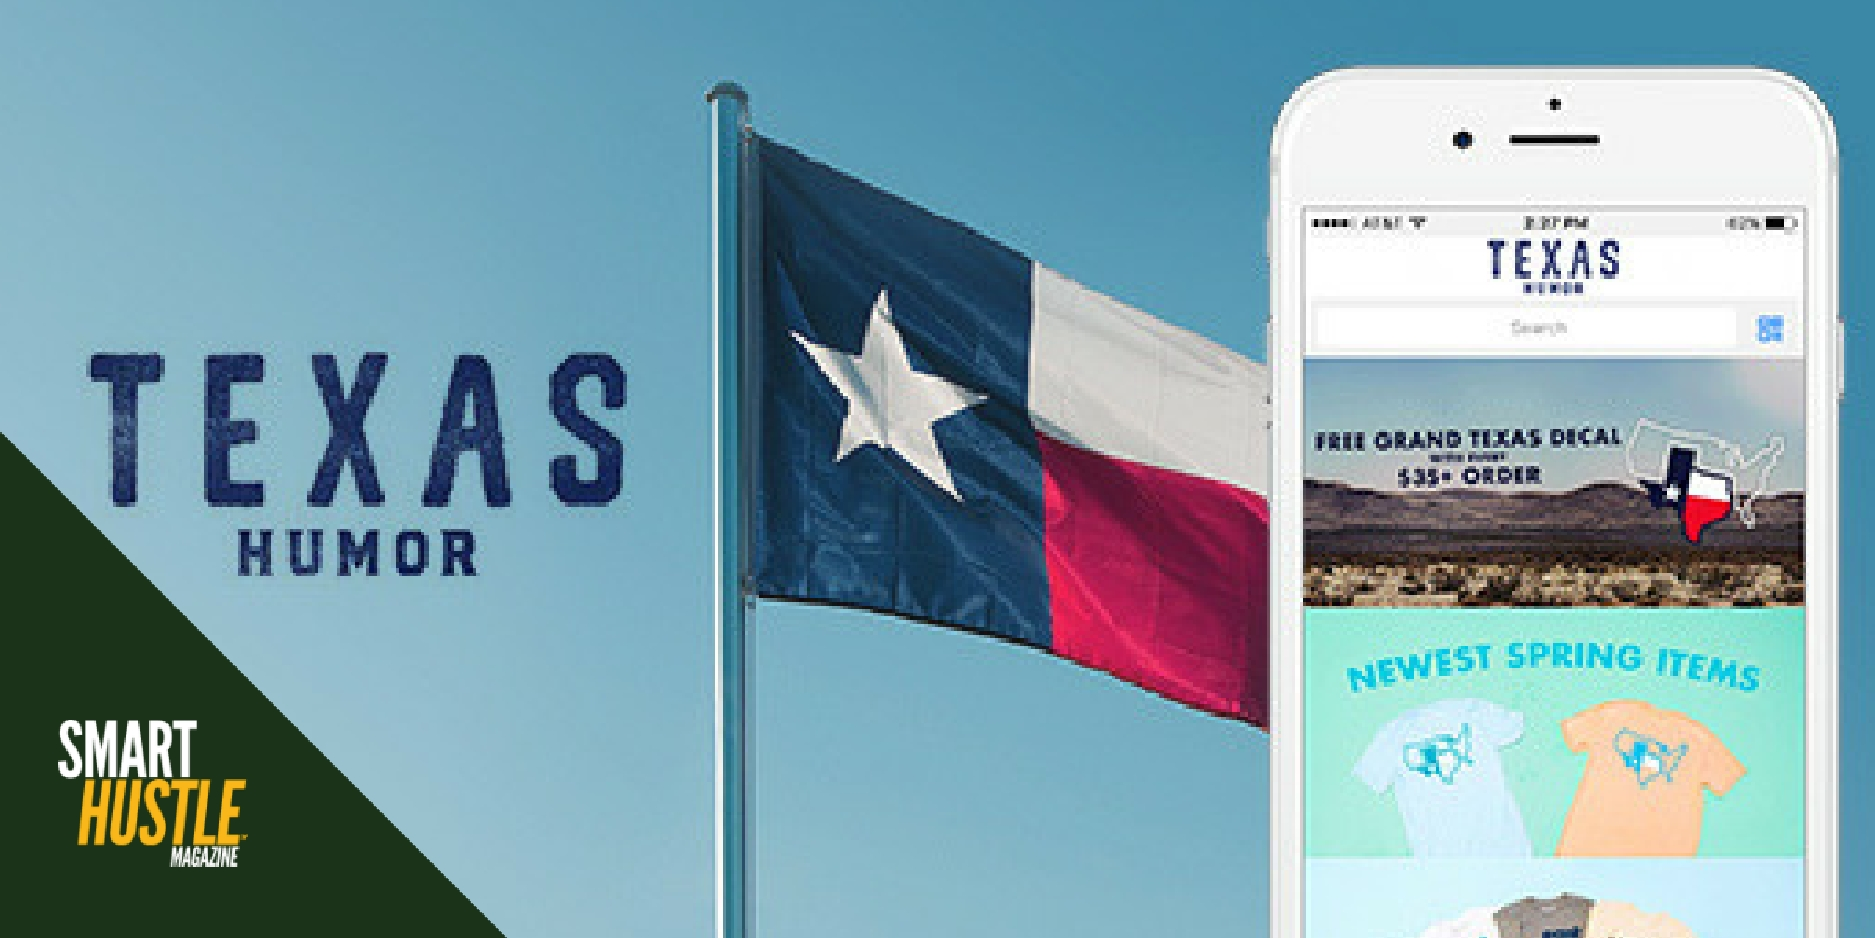 How Texas Humor Used a Mobile App to Grow Their Business